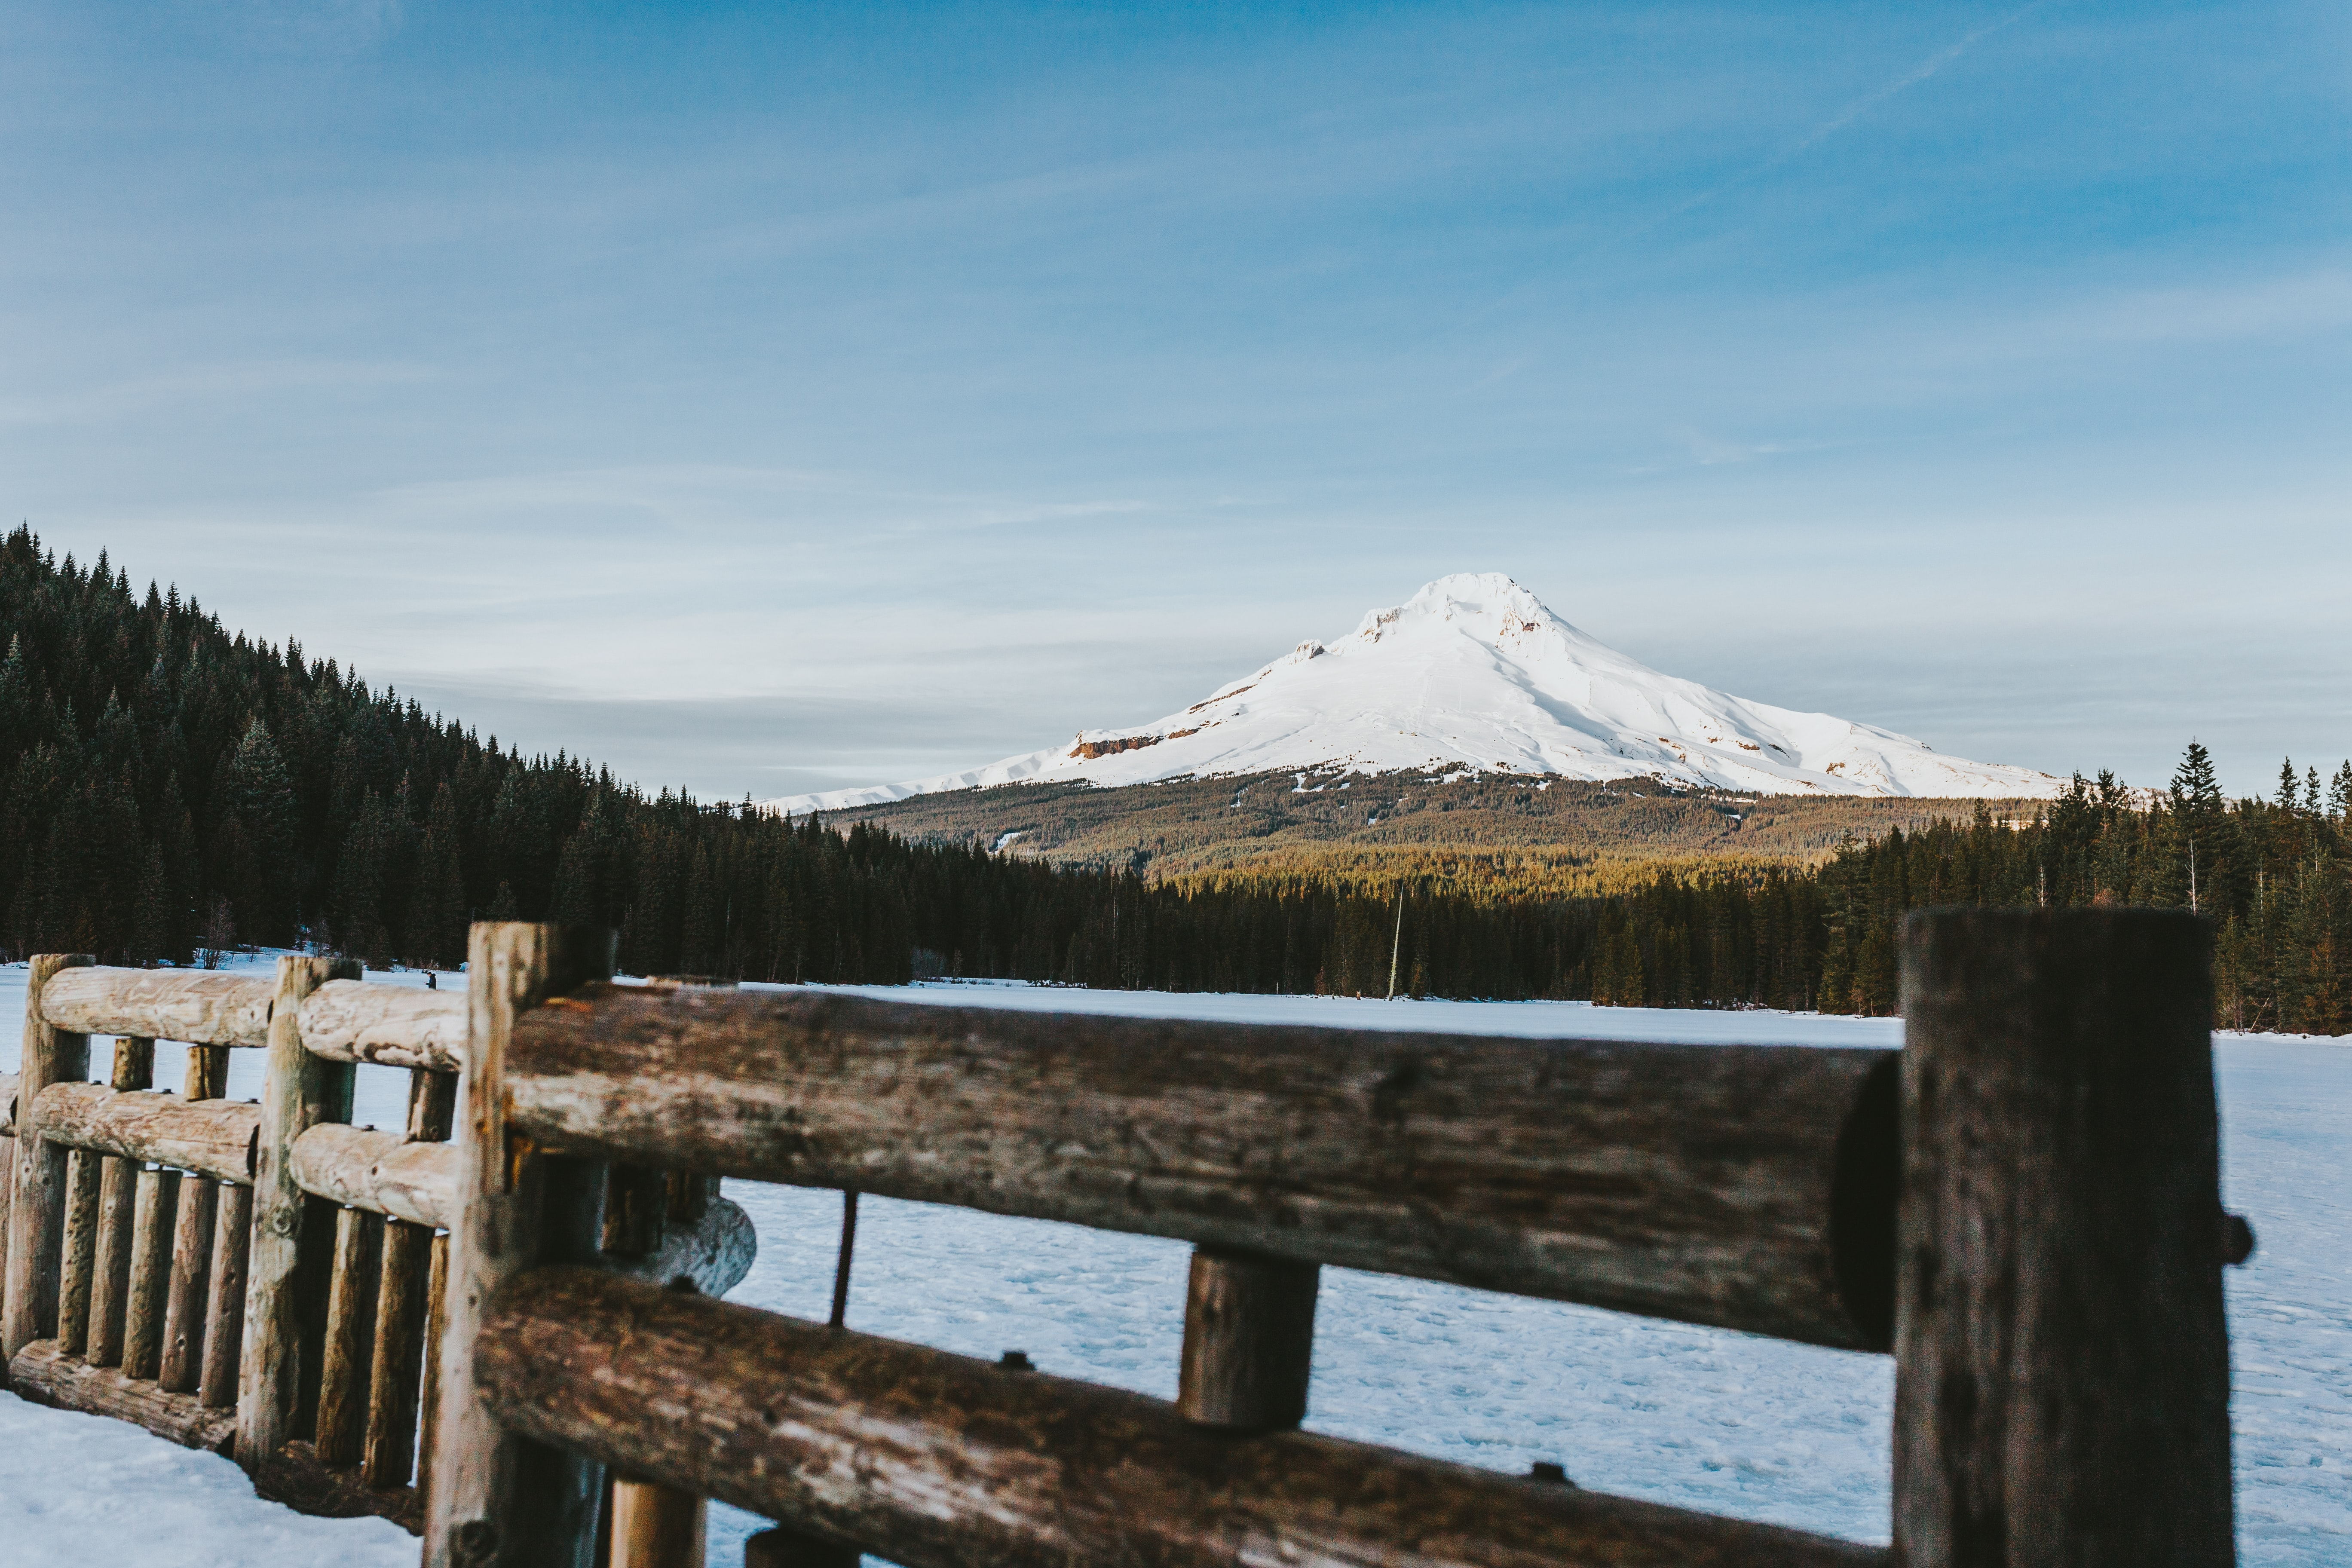 brown wooden fence near lake with view of snow capped mountain